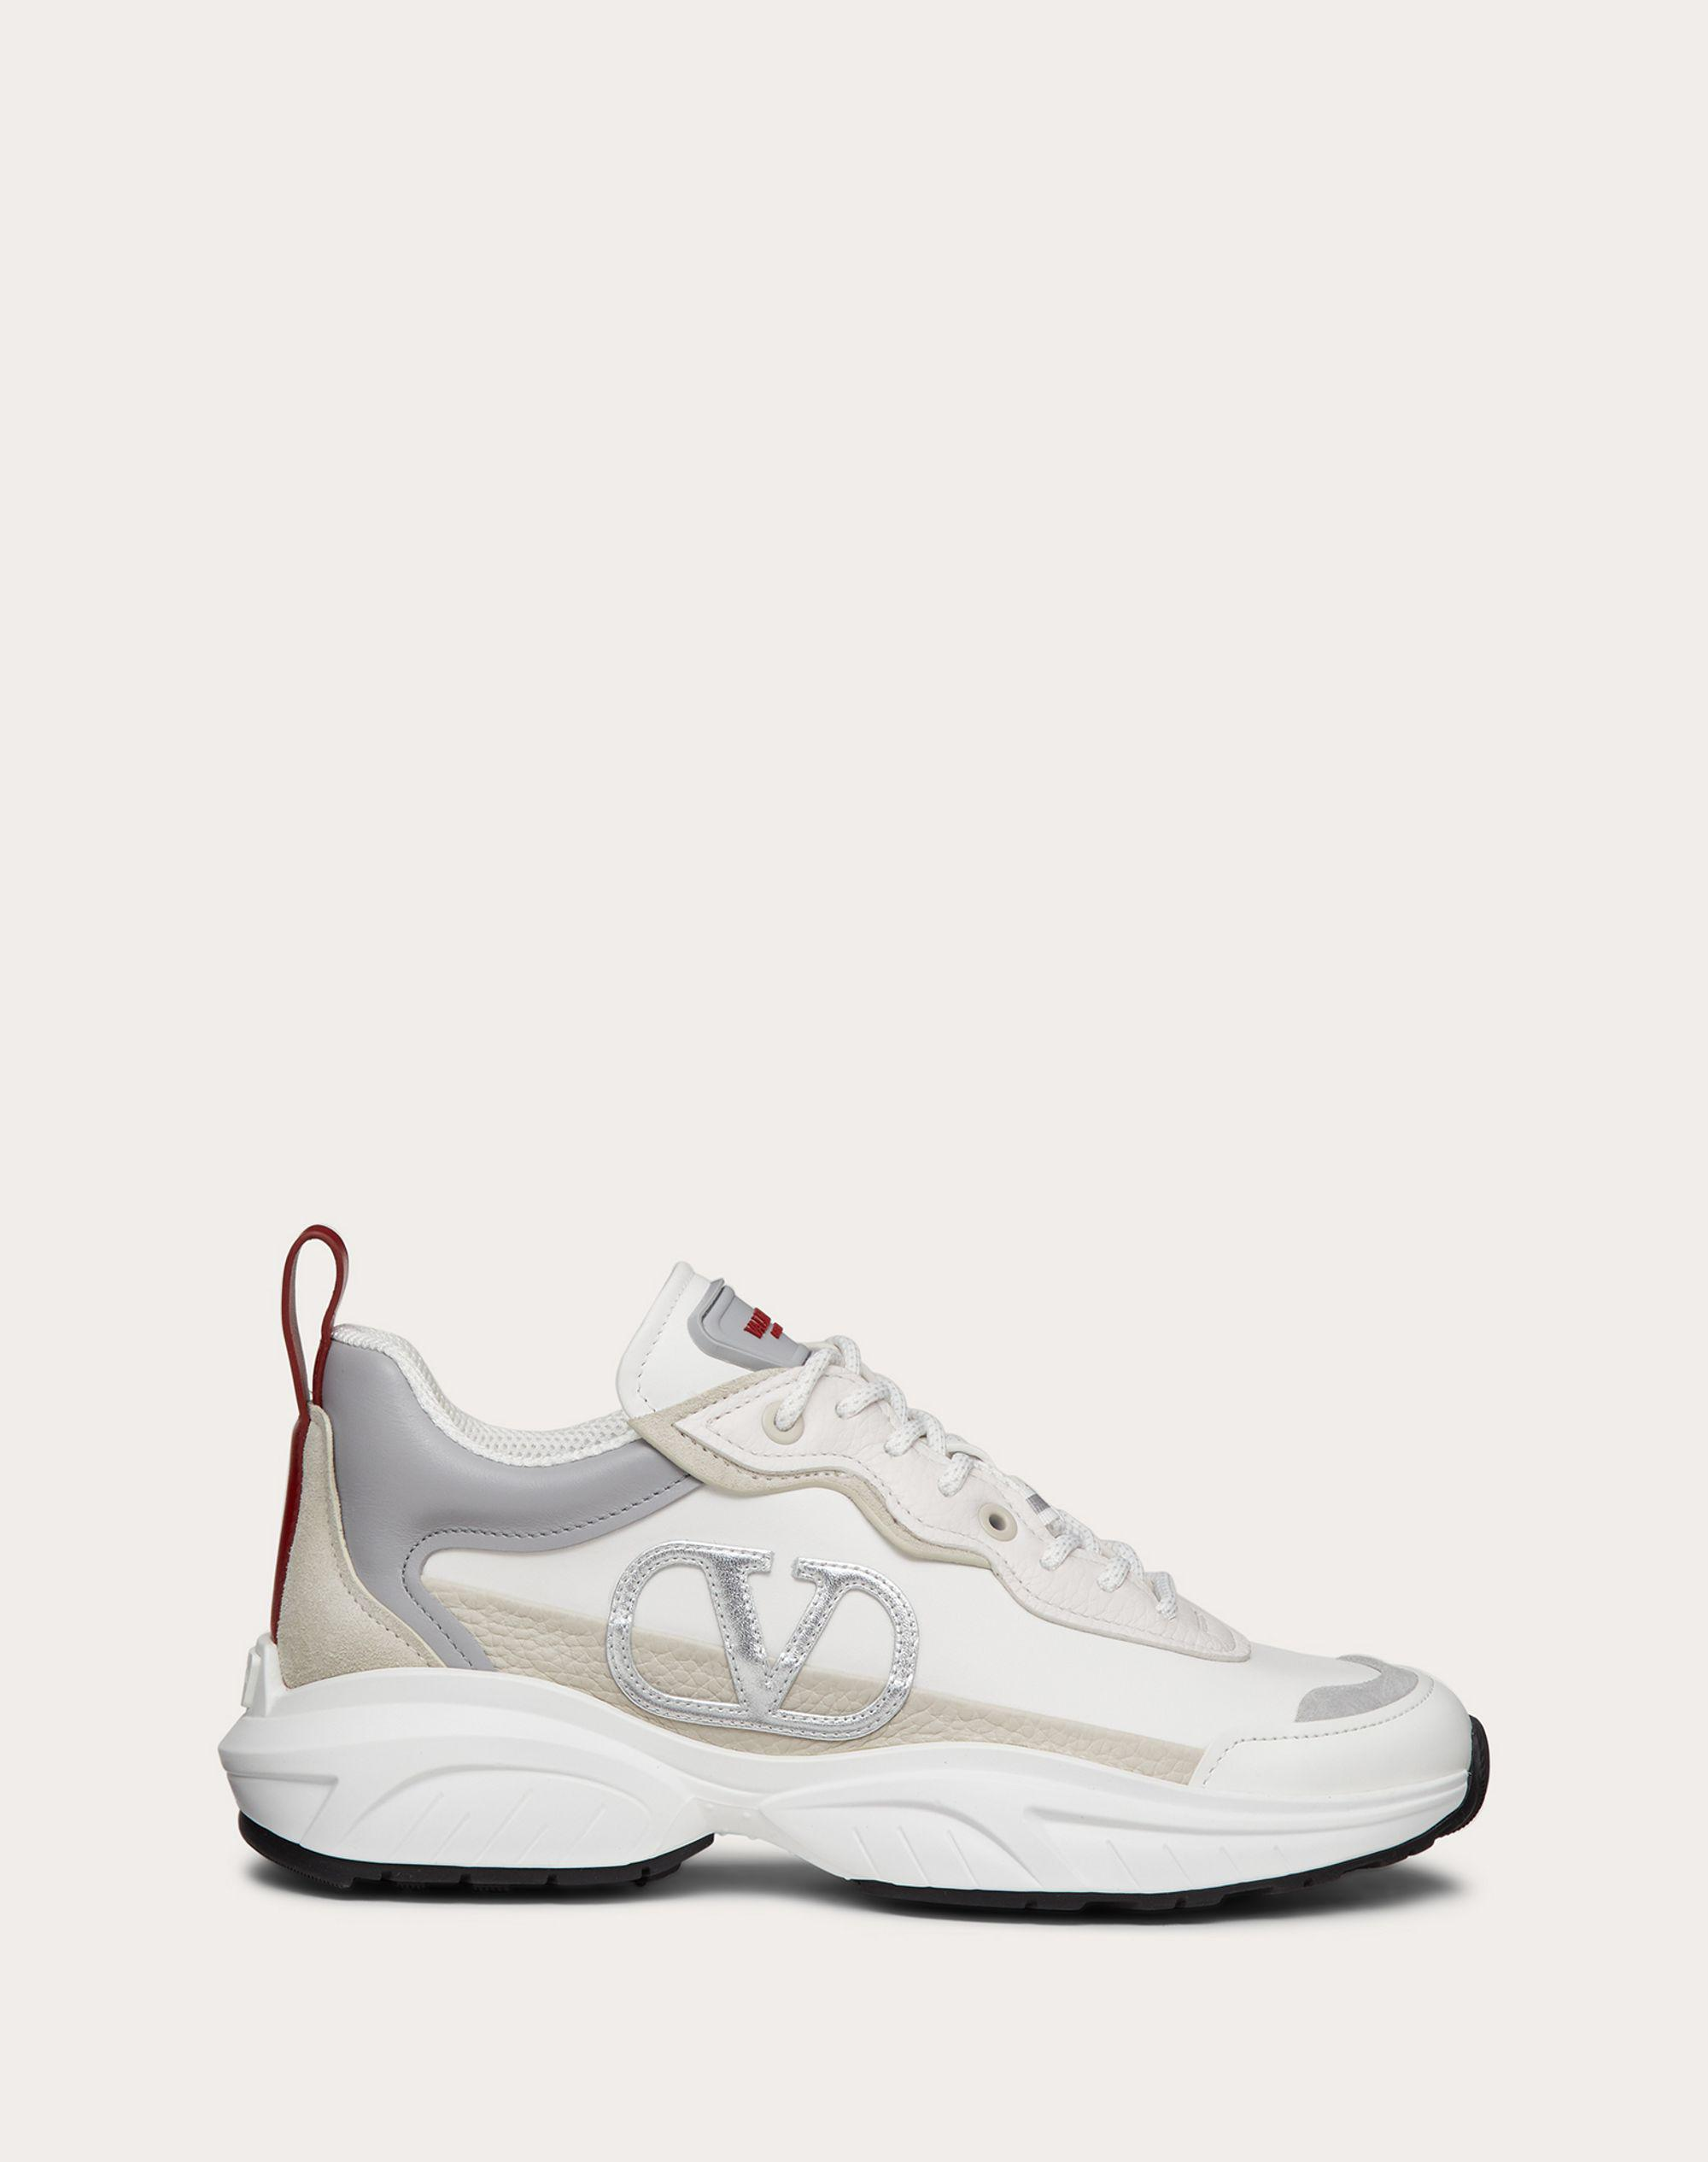 SHEGOES Sneaker in split leather and calfskin leather